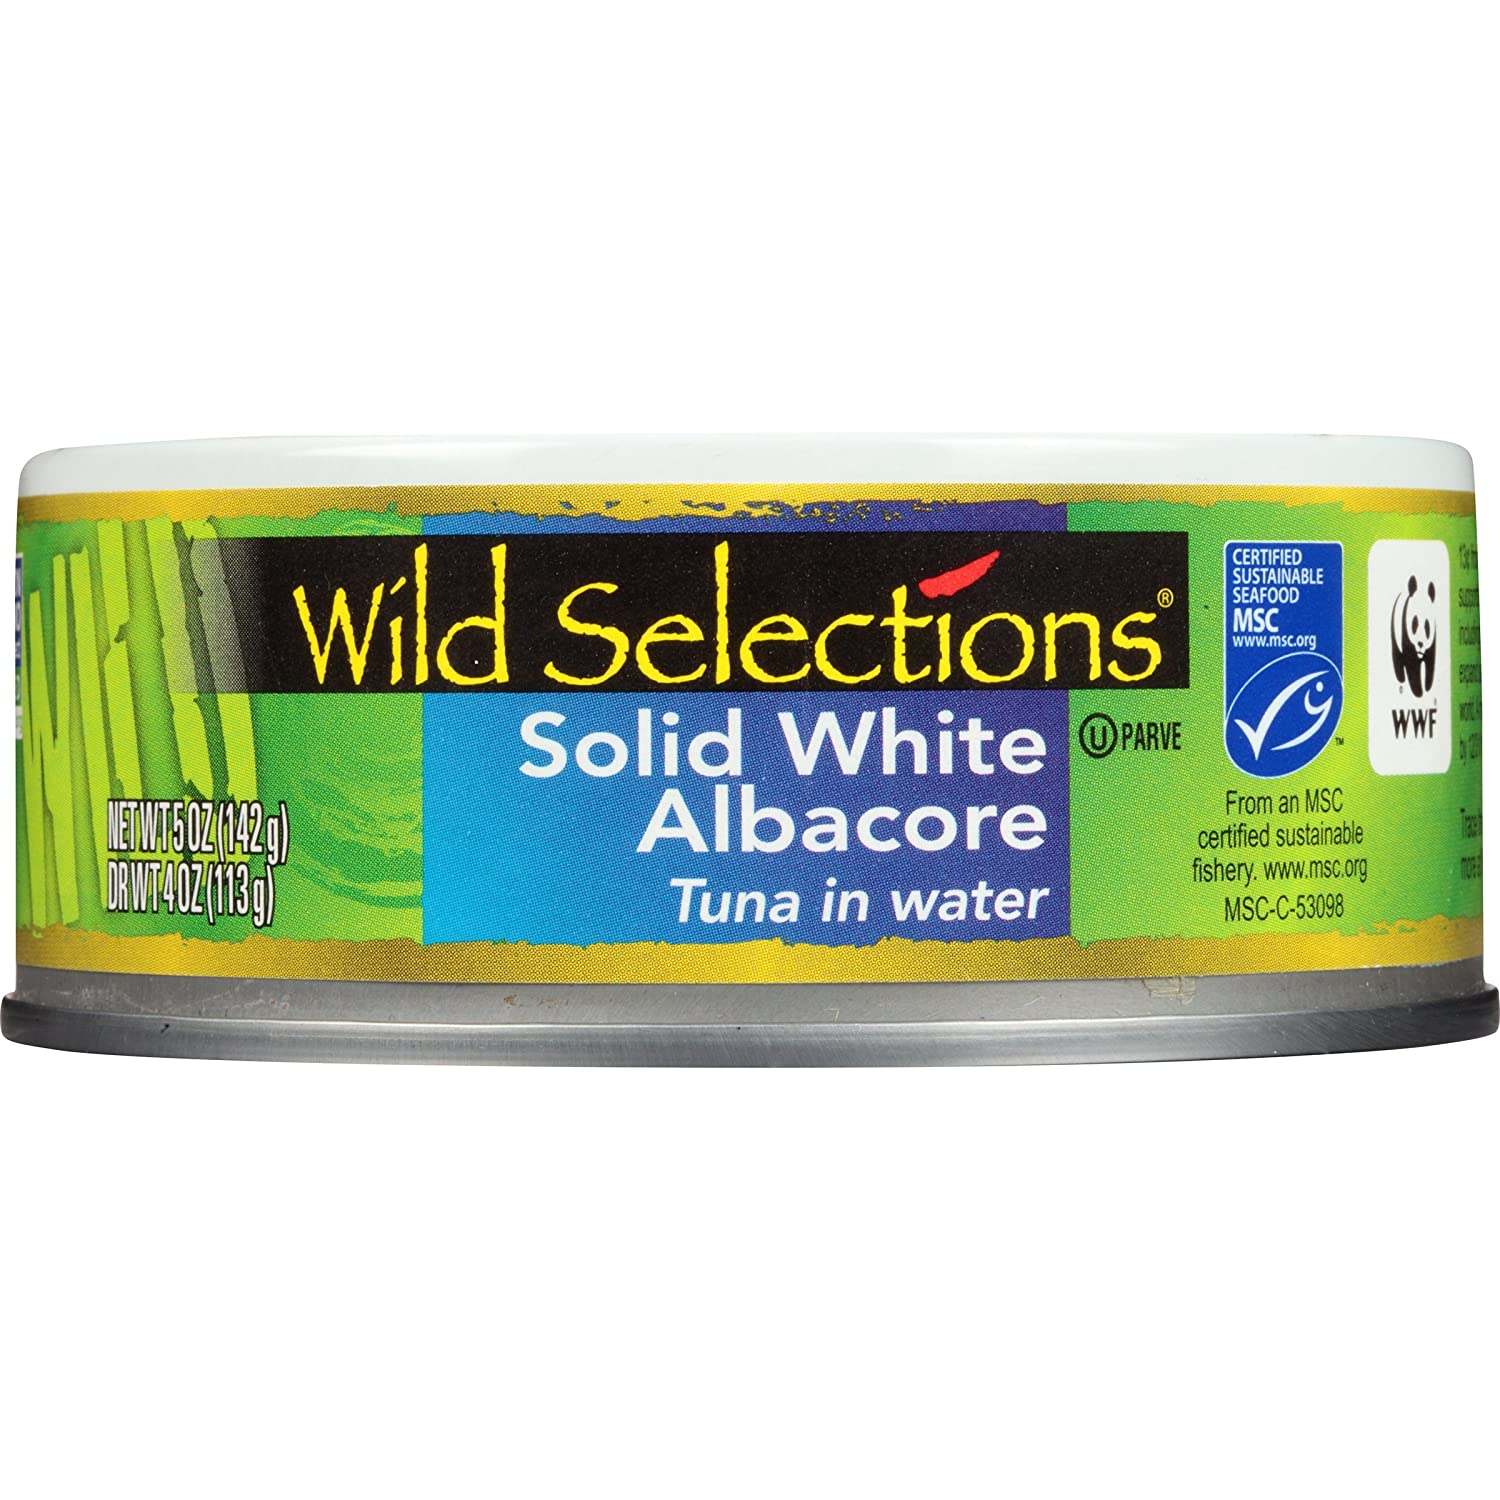 wild selections solid white albacore tuna in water ounce can wild selections solid white albacore tuna in water 5 ounce can pack of 4 com grocery gourmet food